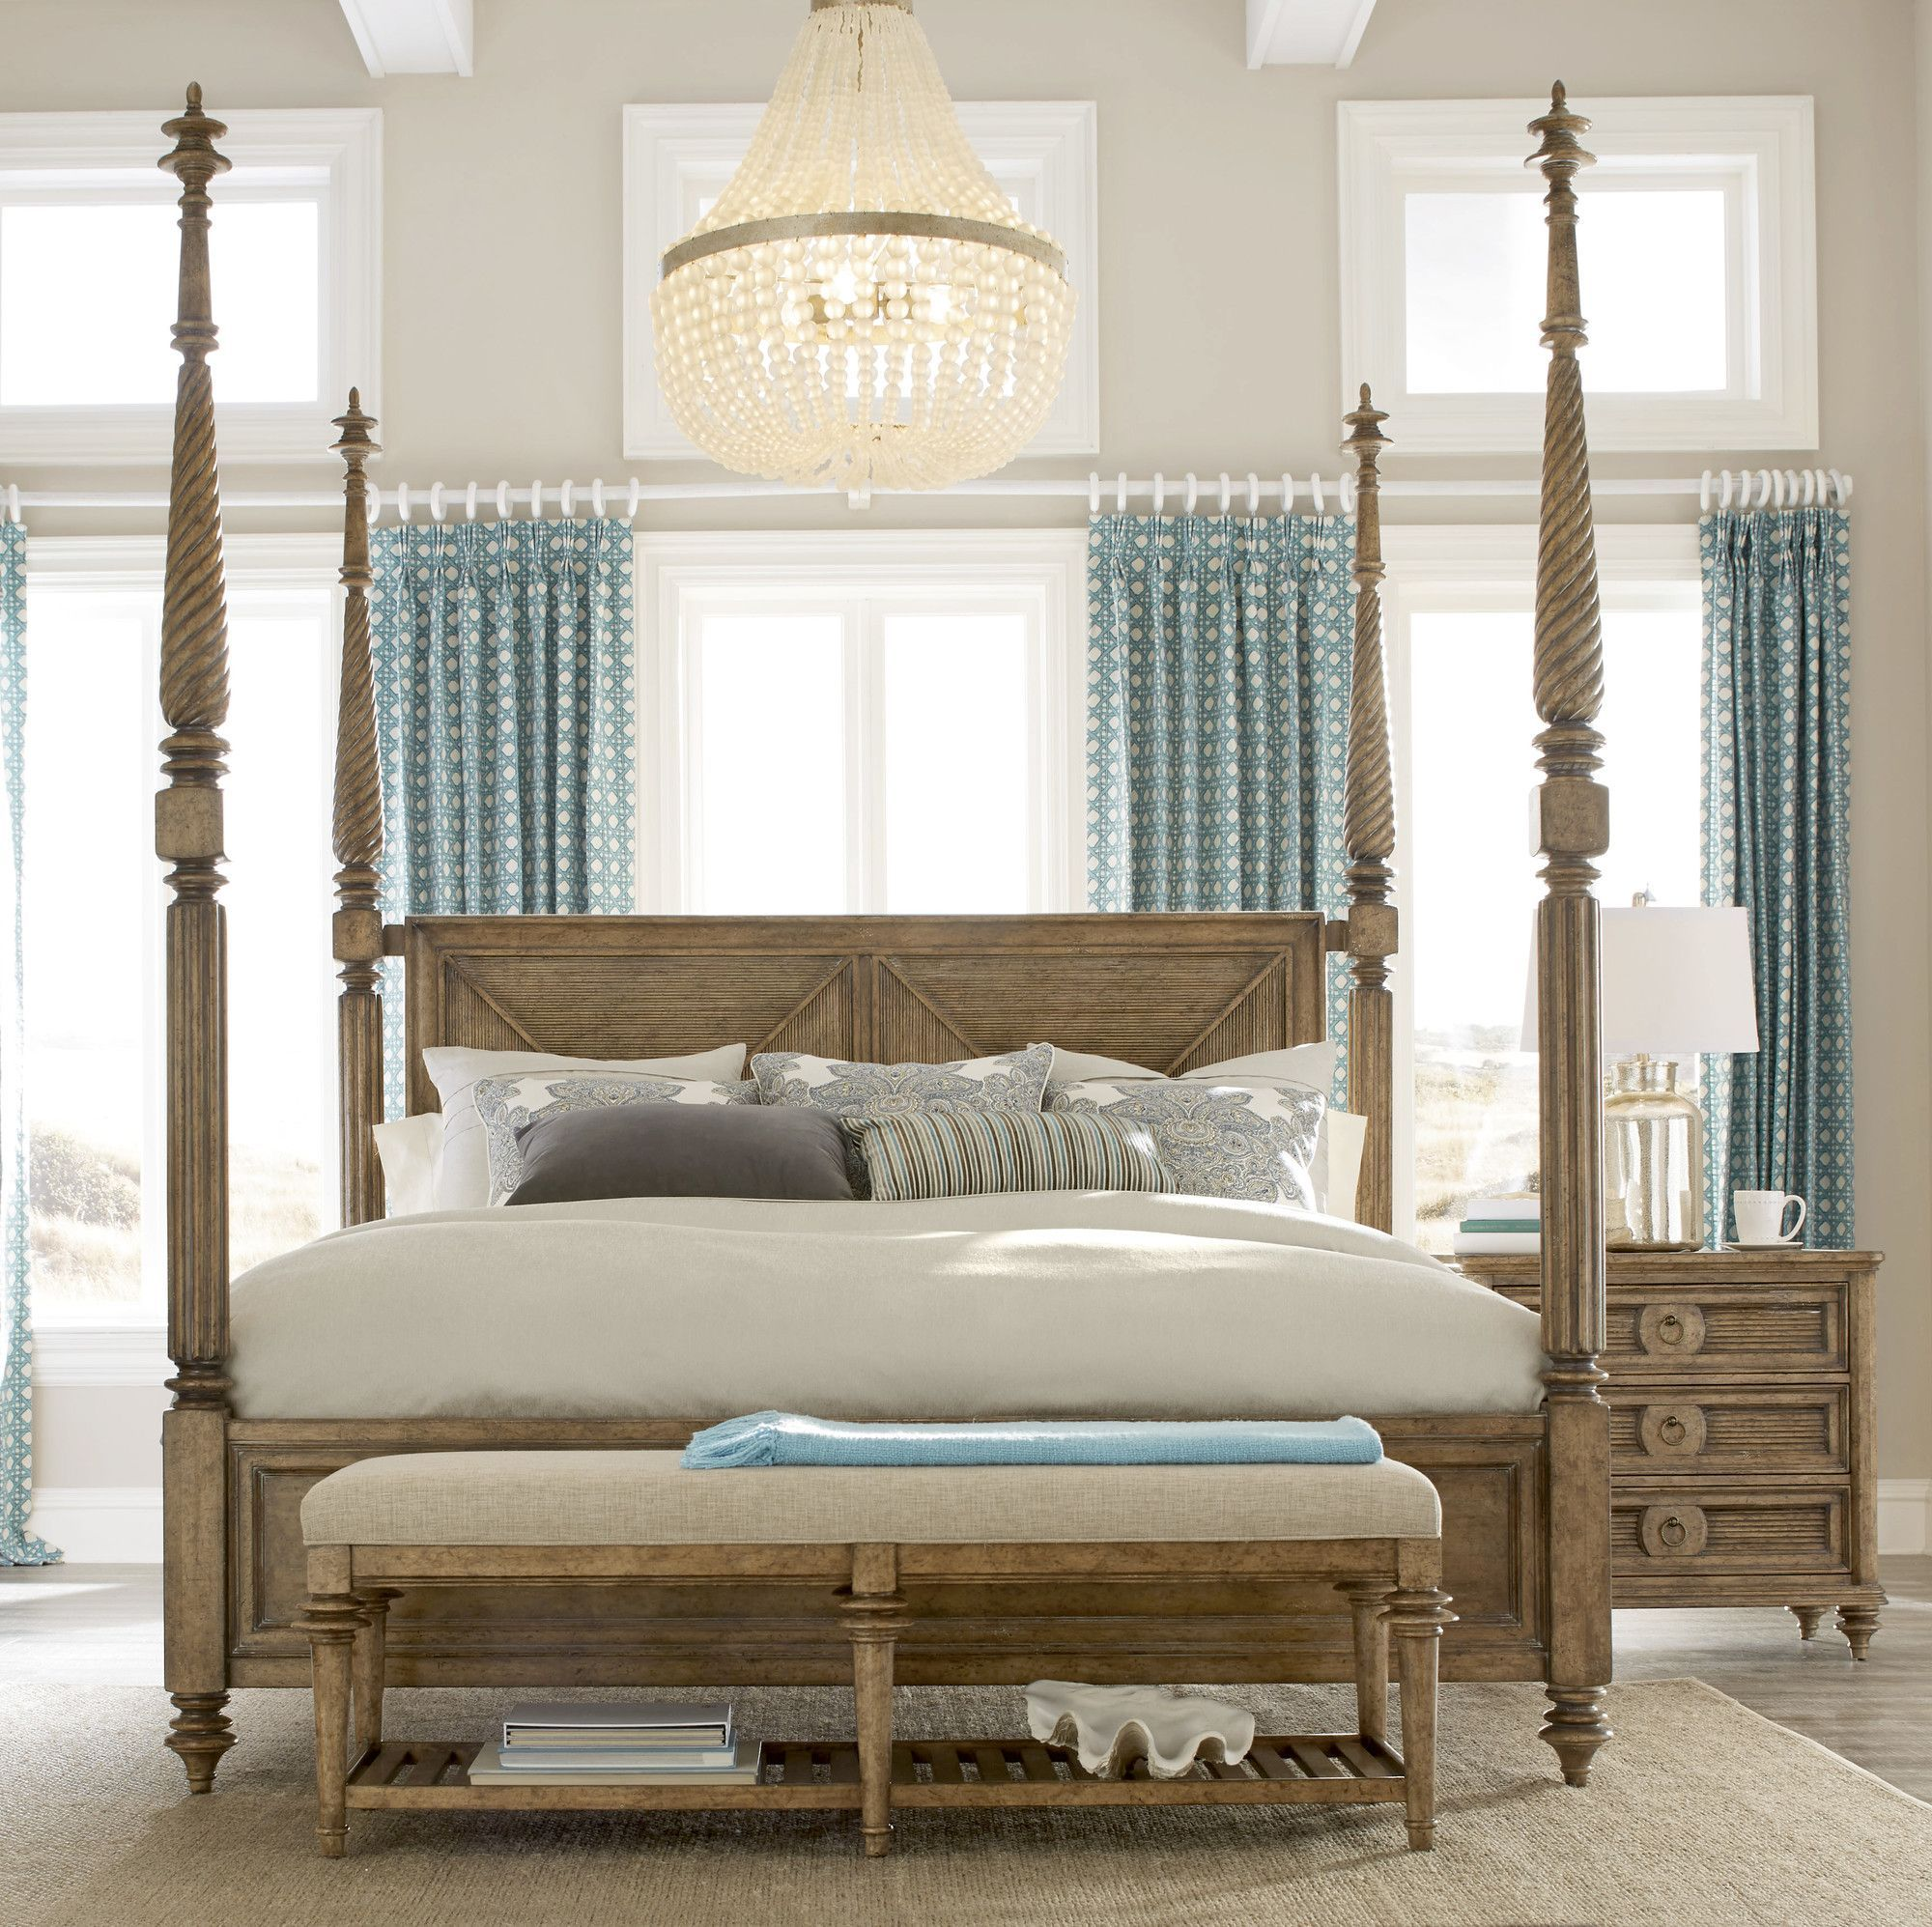 studio bedroom bed beach coastal themed design fresher for master beds fascinating home theme guest